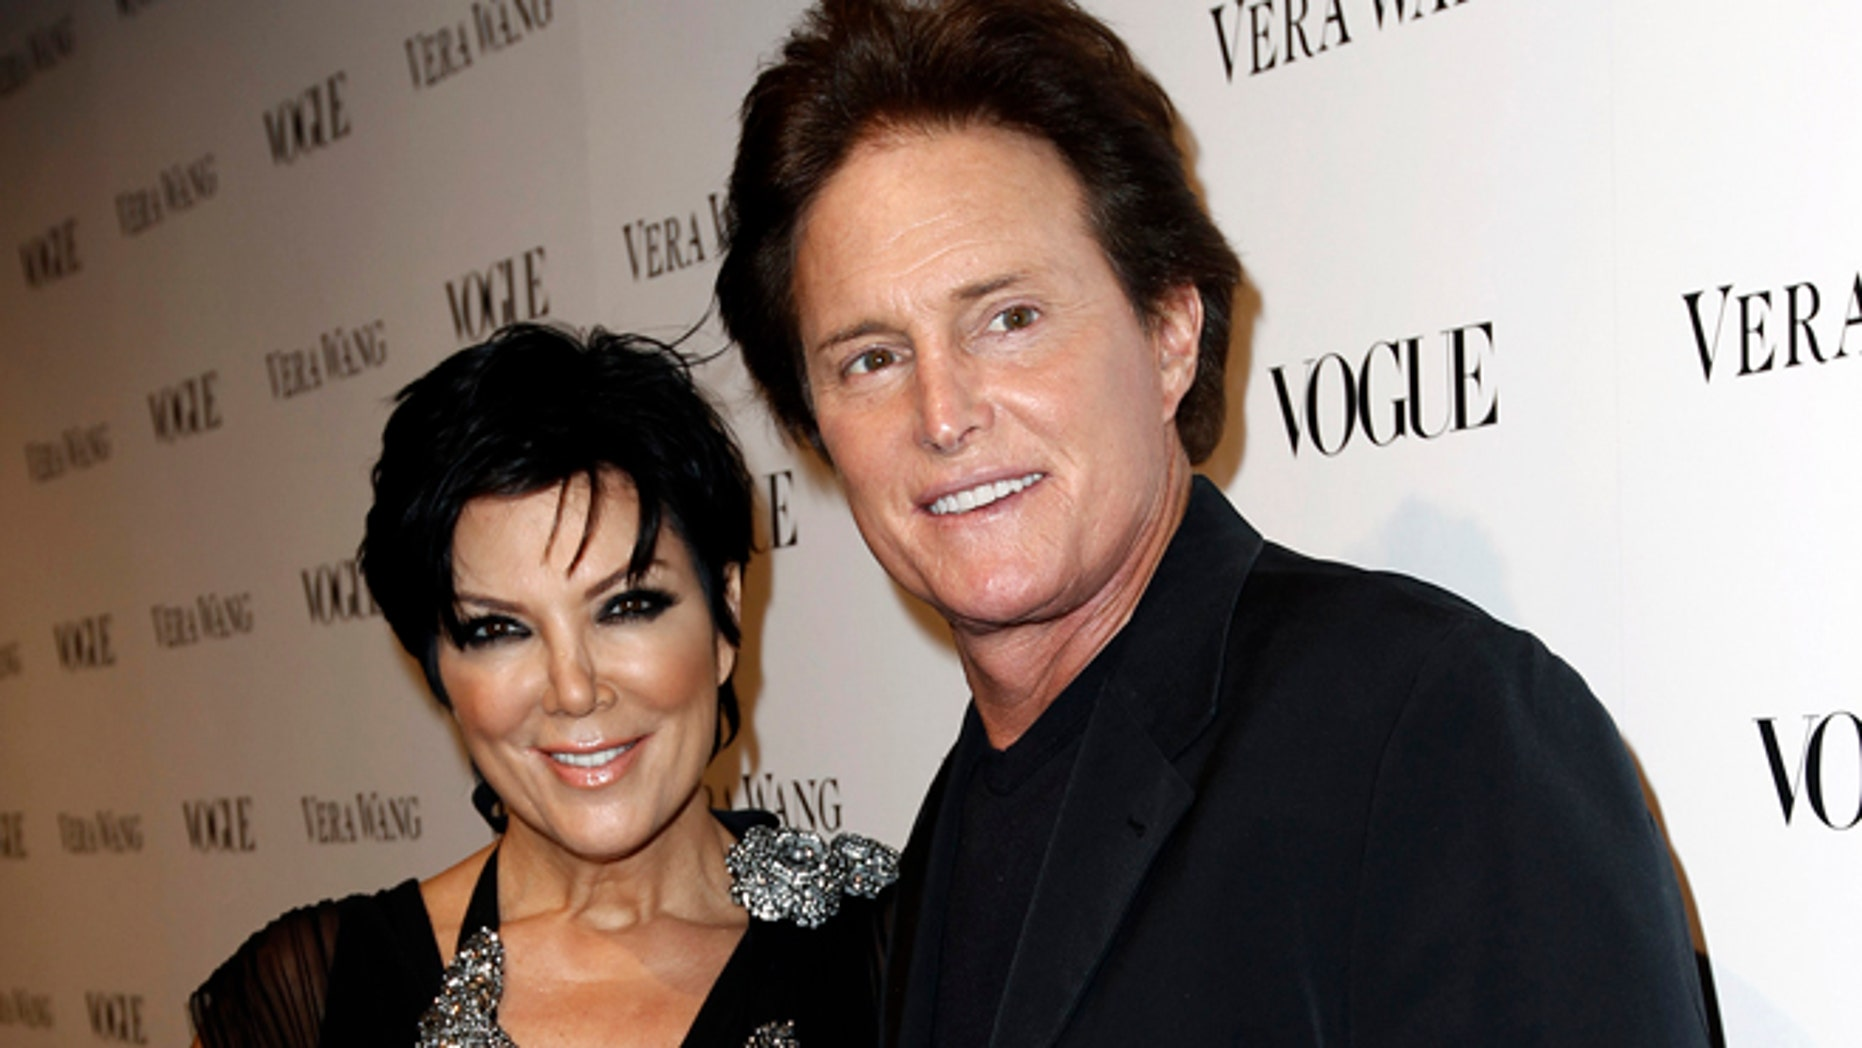 March 2, 2010: This file photo shows Kris Jenner, left, and Bruce Jenner at the Vogue Magazine dinner celebrating the launch of the Vera Wang store on Melrose in West Hollywood, Calif.